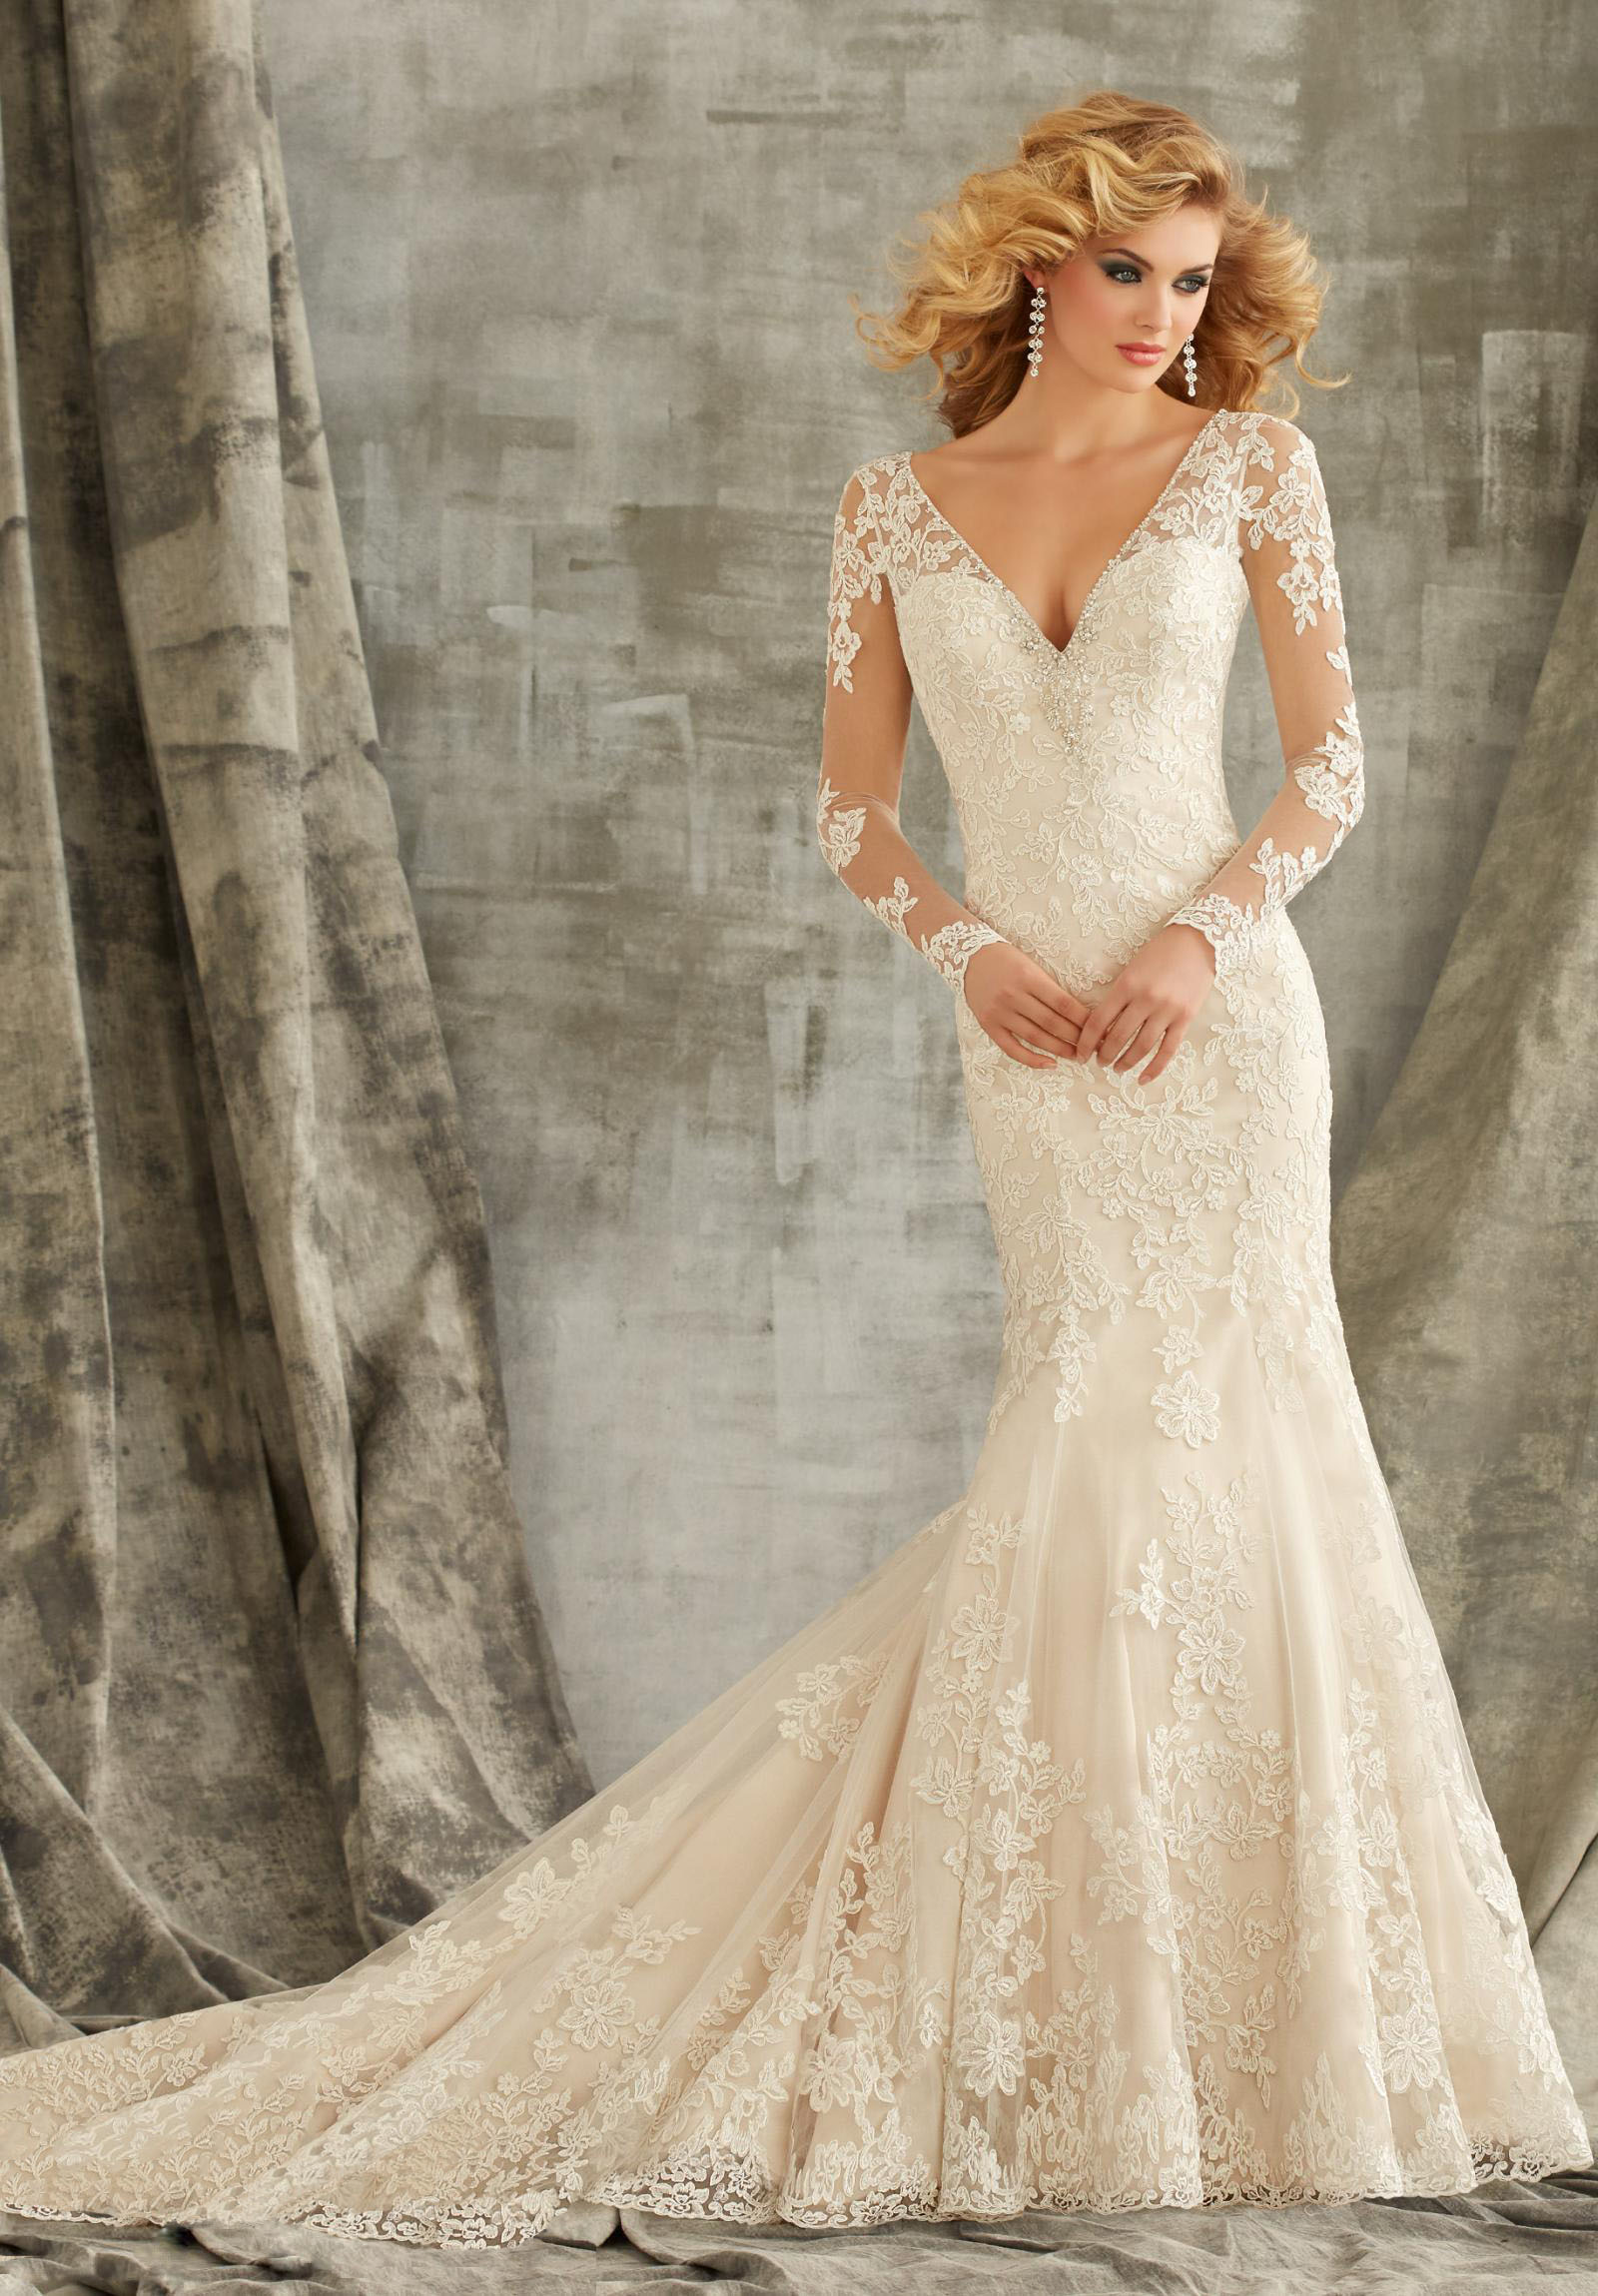 Elegant wedding dresses with sleeves ohh my my for Elegant wedding dresses with long sleeves